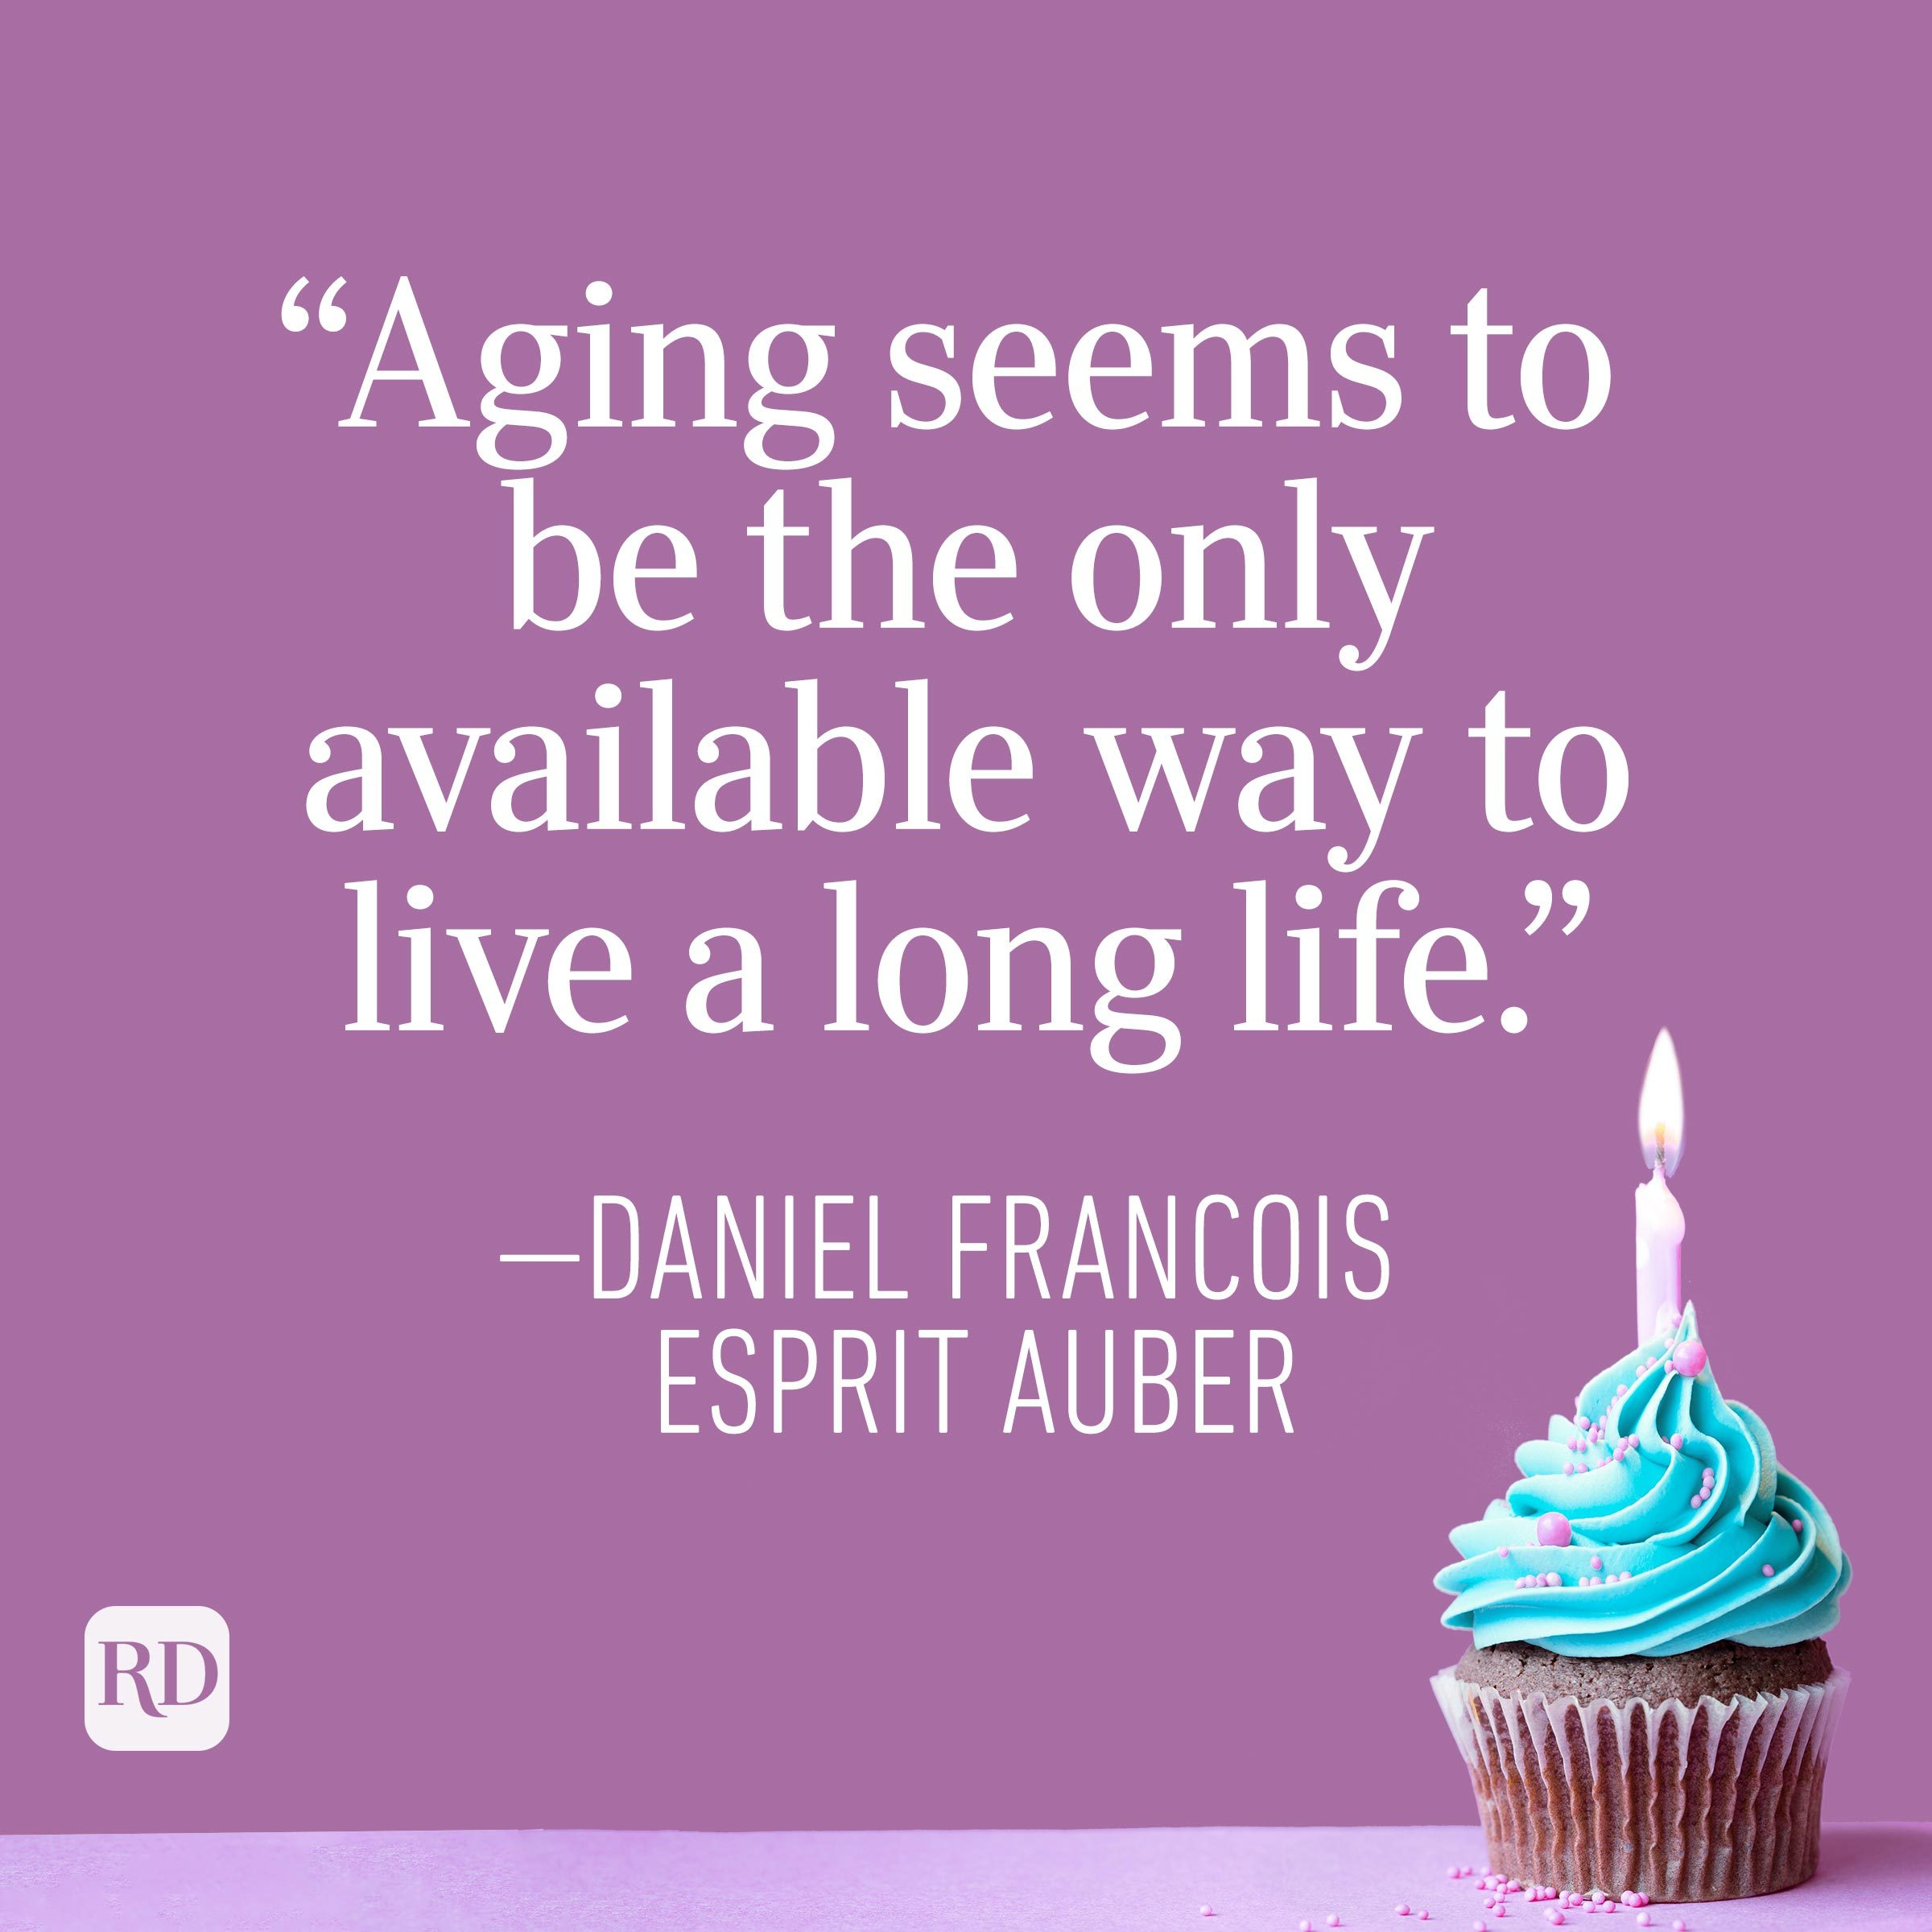 """""""Aging seems to be the only available way to live a long life."""" —Daniel Francois Esprit Auber"""